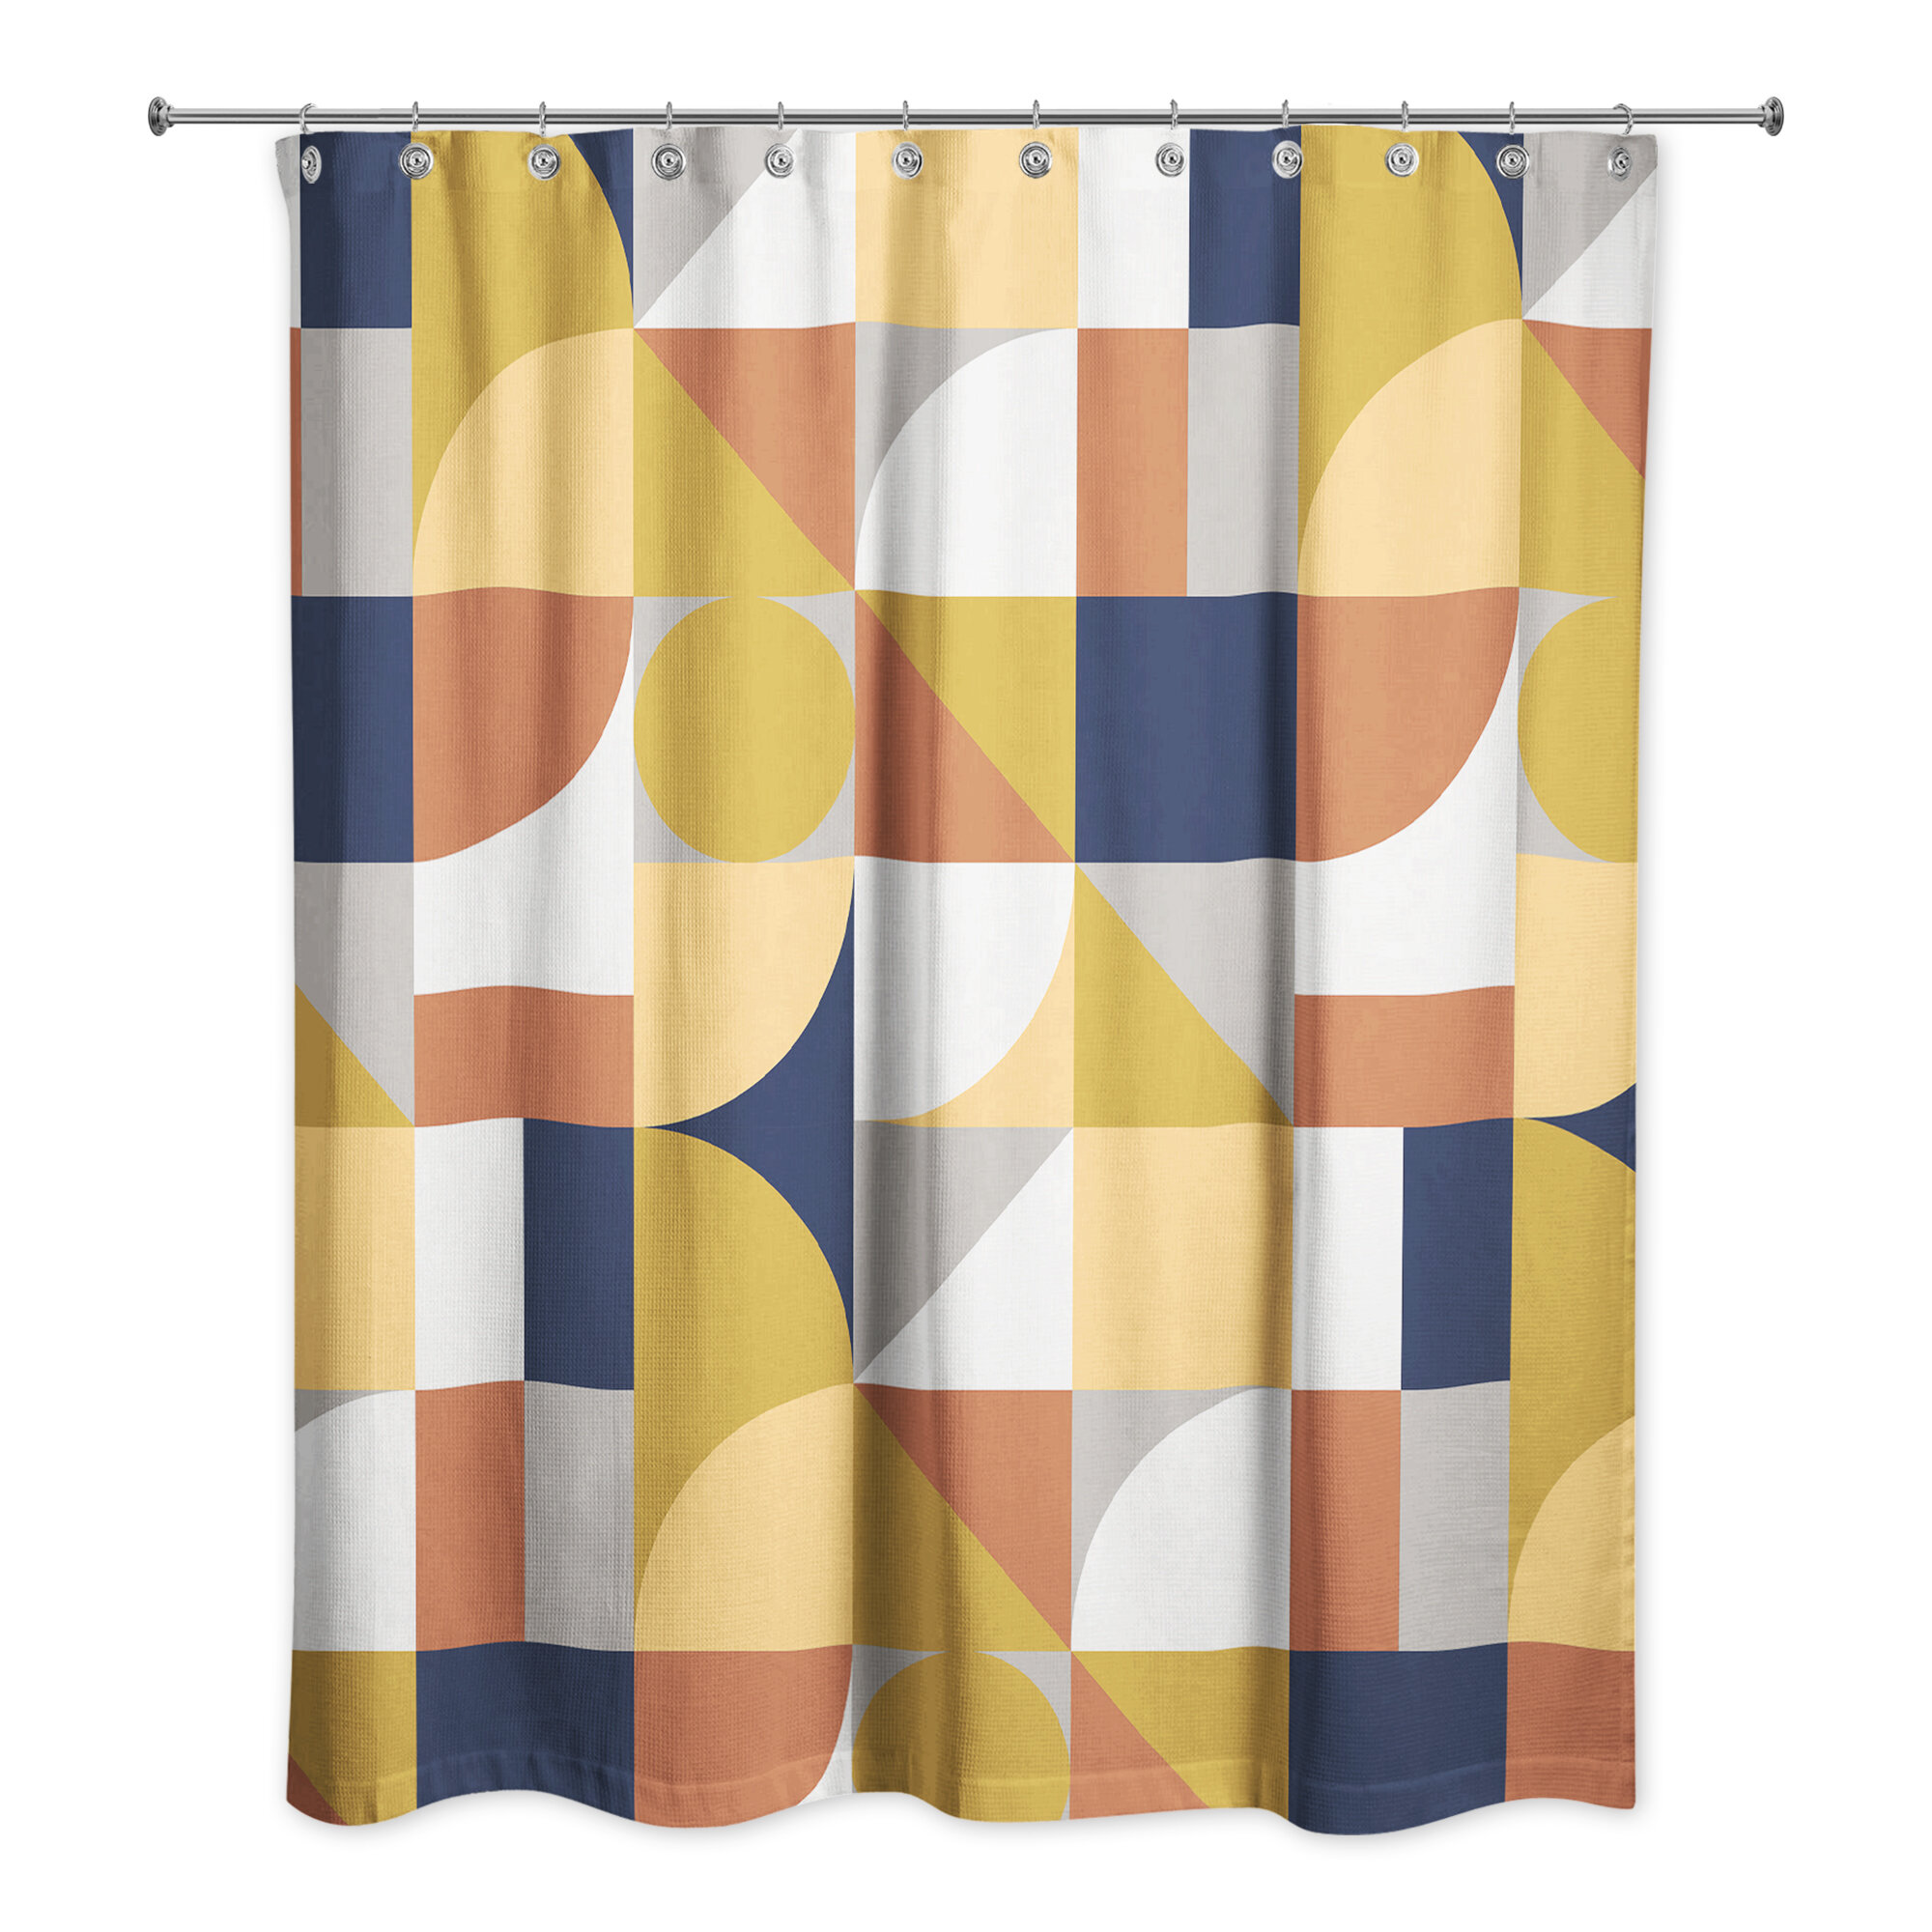 Corrigan Studio Mirabal Geometric Single Shower Curtain Wayfair